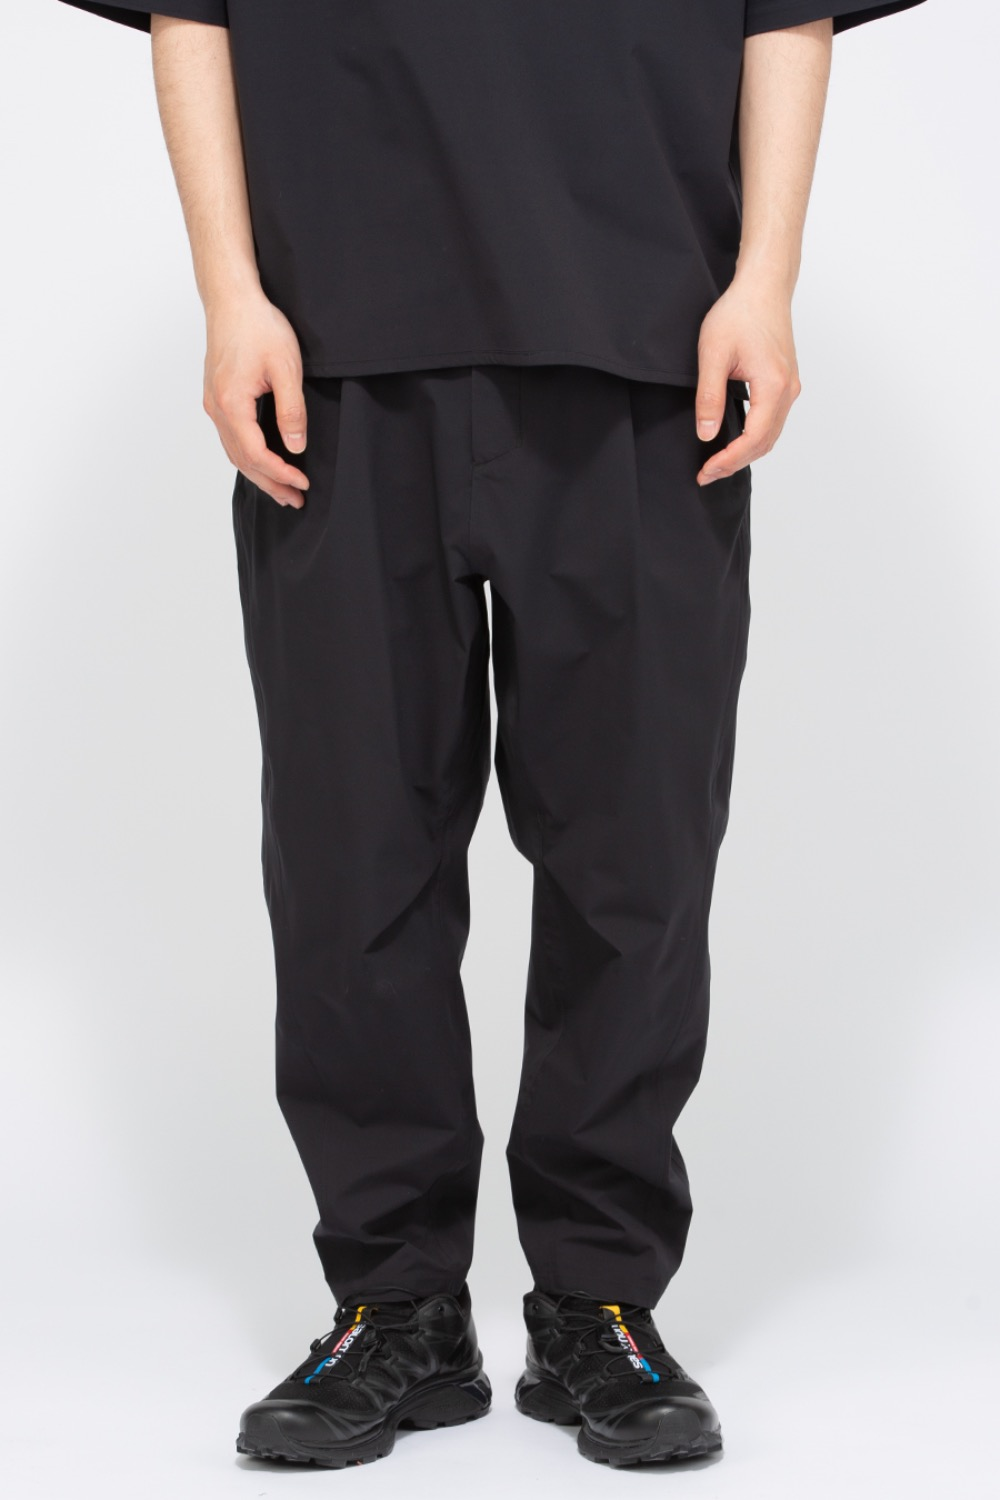 STORM BREAKER TROUSERS BLACK (ZYCX21009)